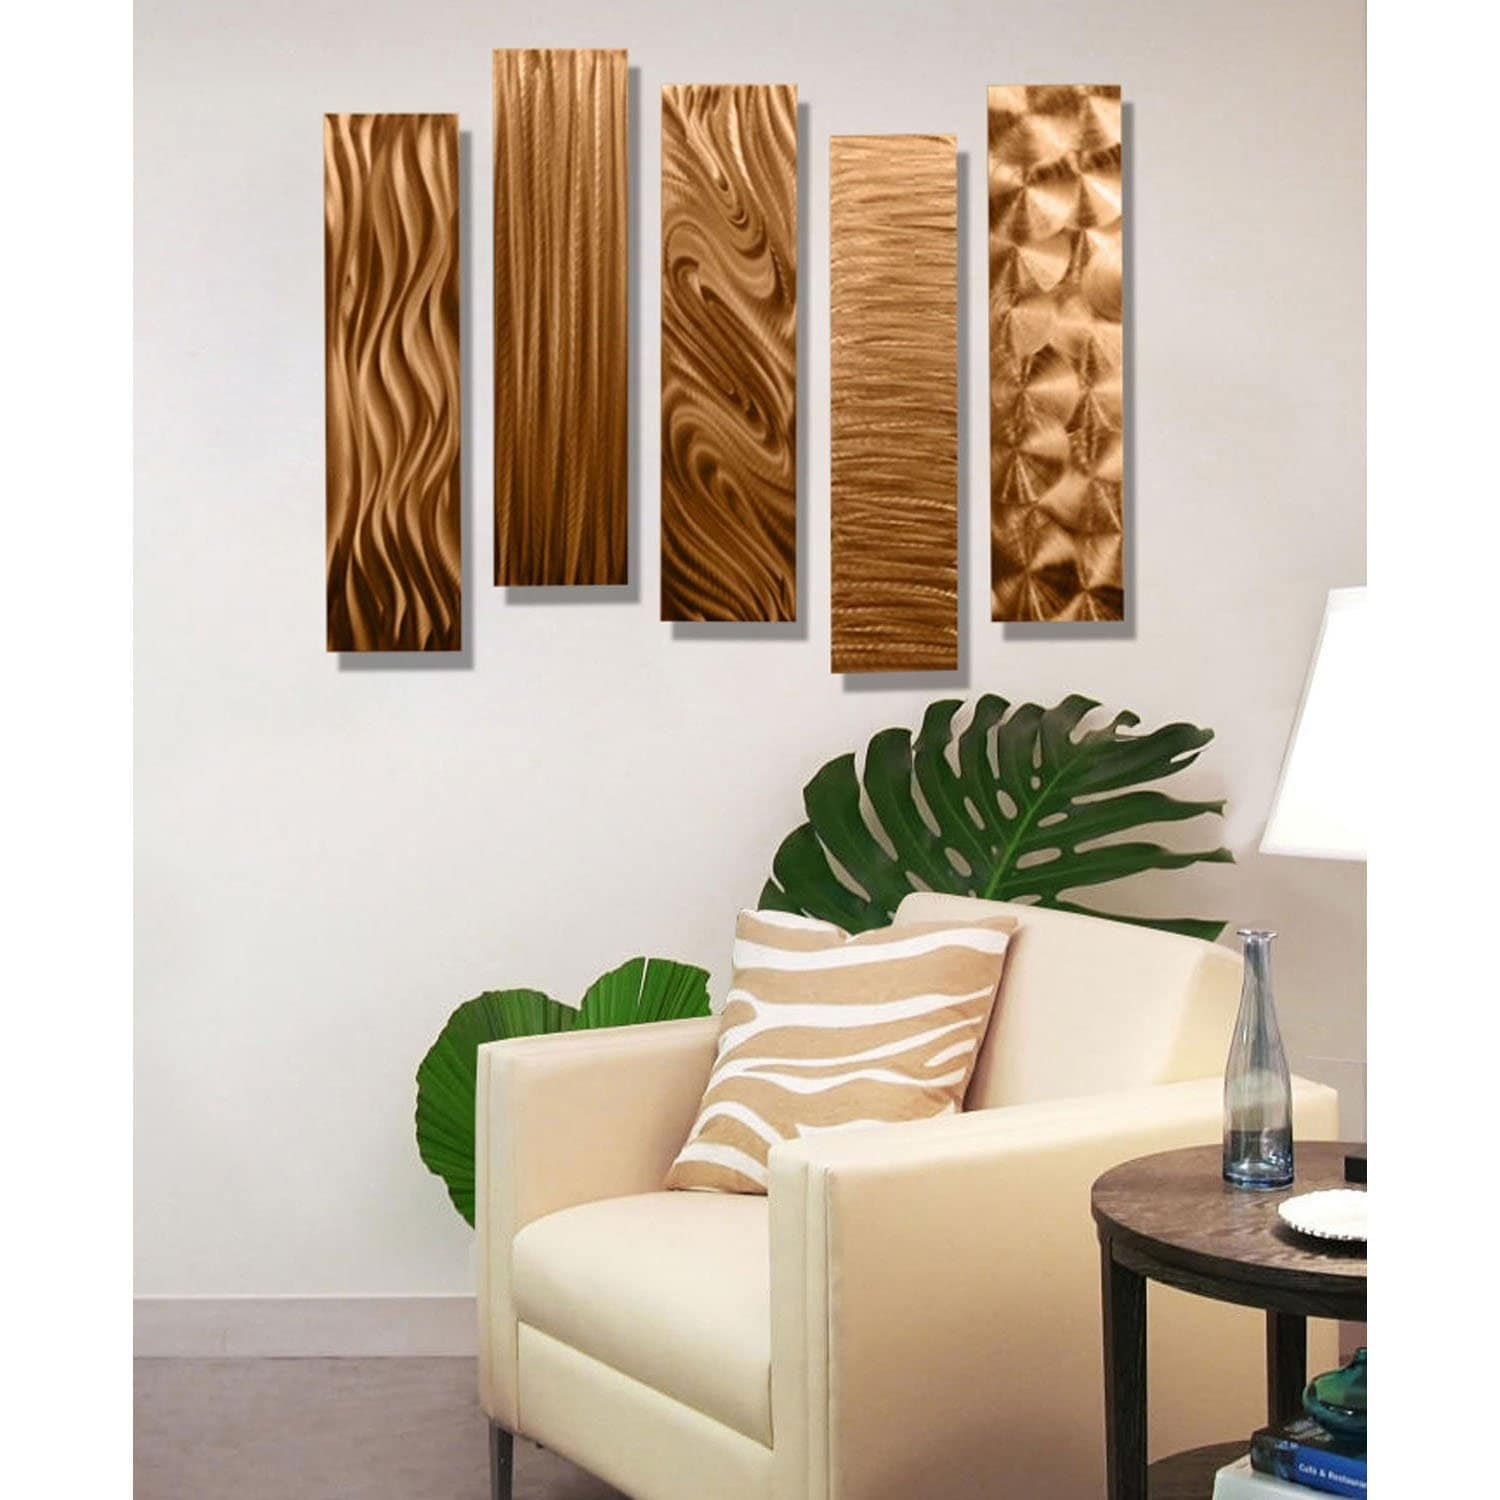 Statements2000 3d Metal Wall Art Accent Panels Modern Copper Decor By Jon Allen Set Of 5 5 Easy Pieces Copper Overstock 12455967